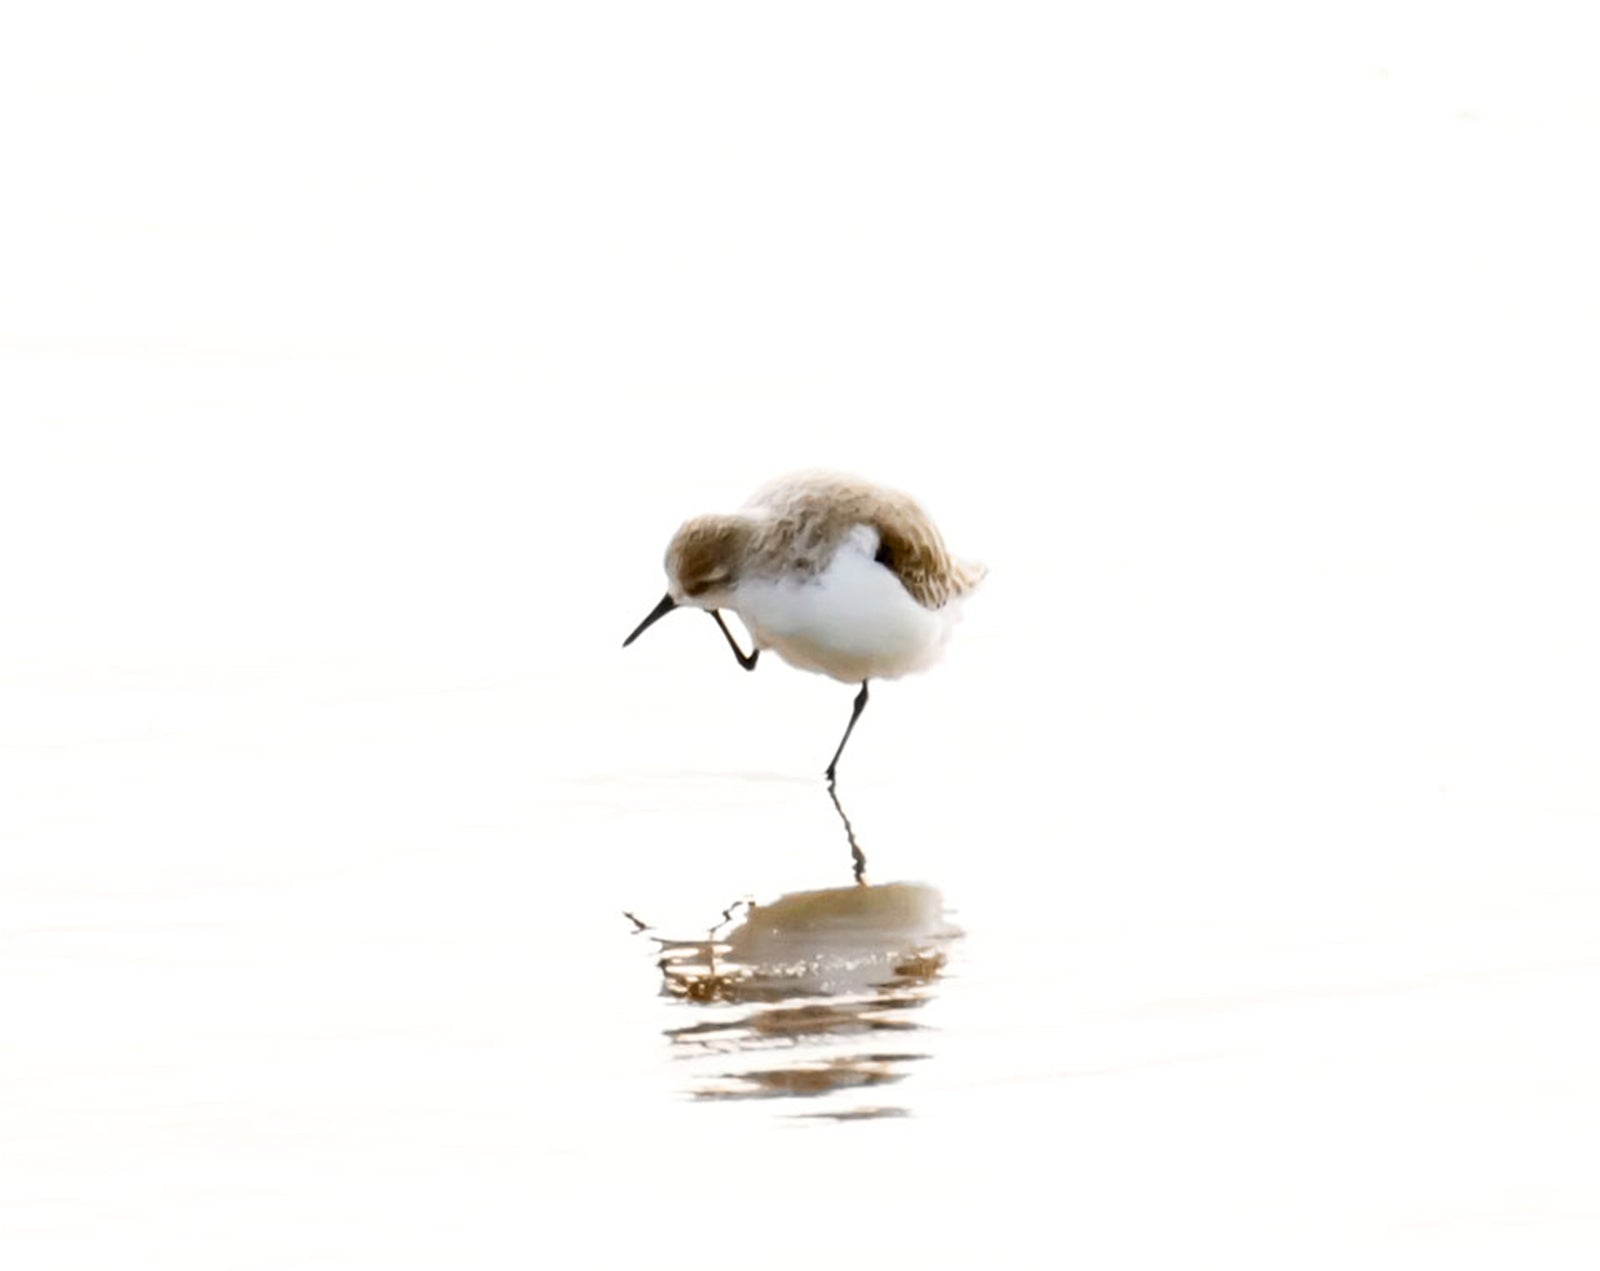 Sandpiper No 2 Bird Photography Wall Art by Cattie Coyle Photography